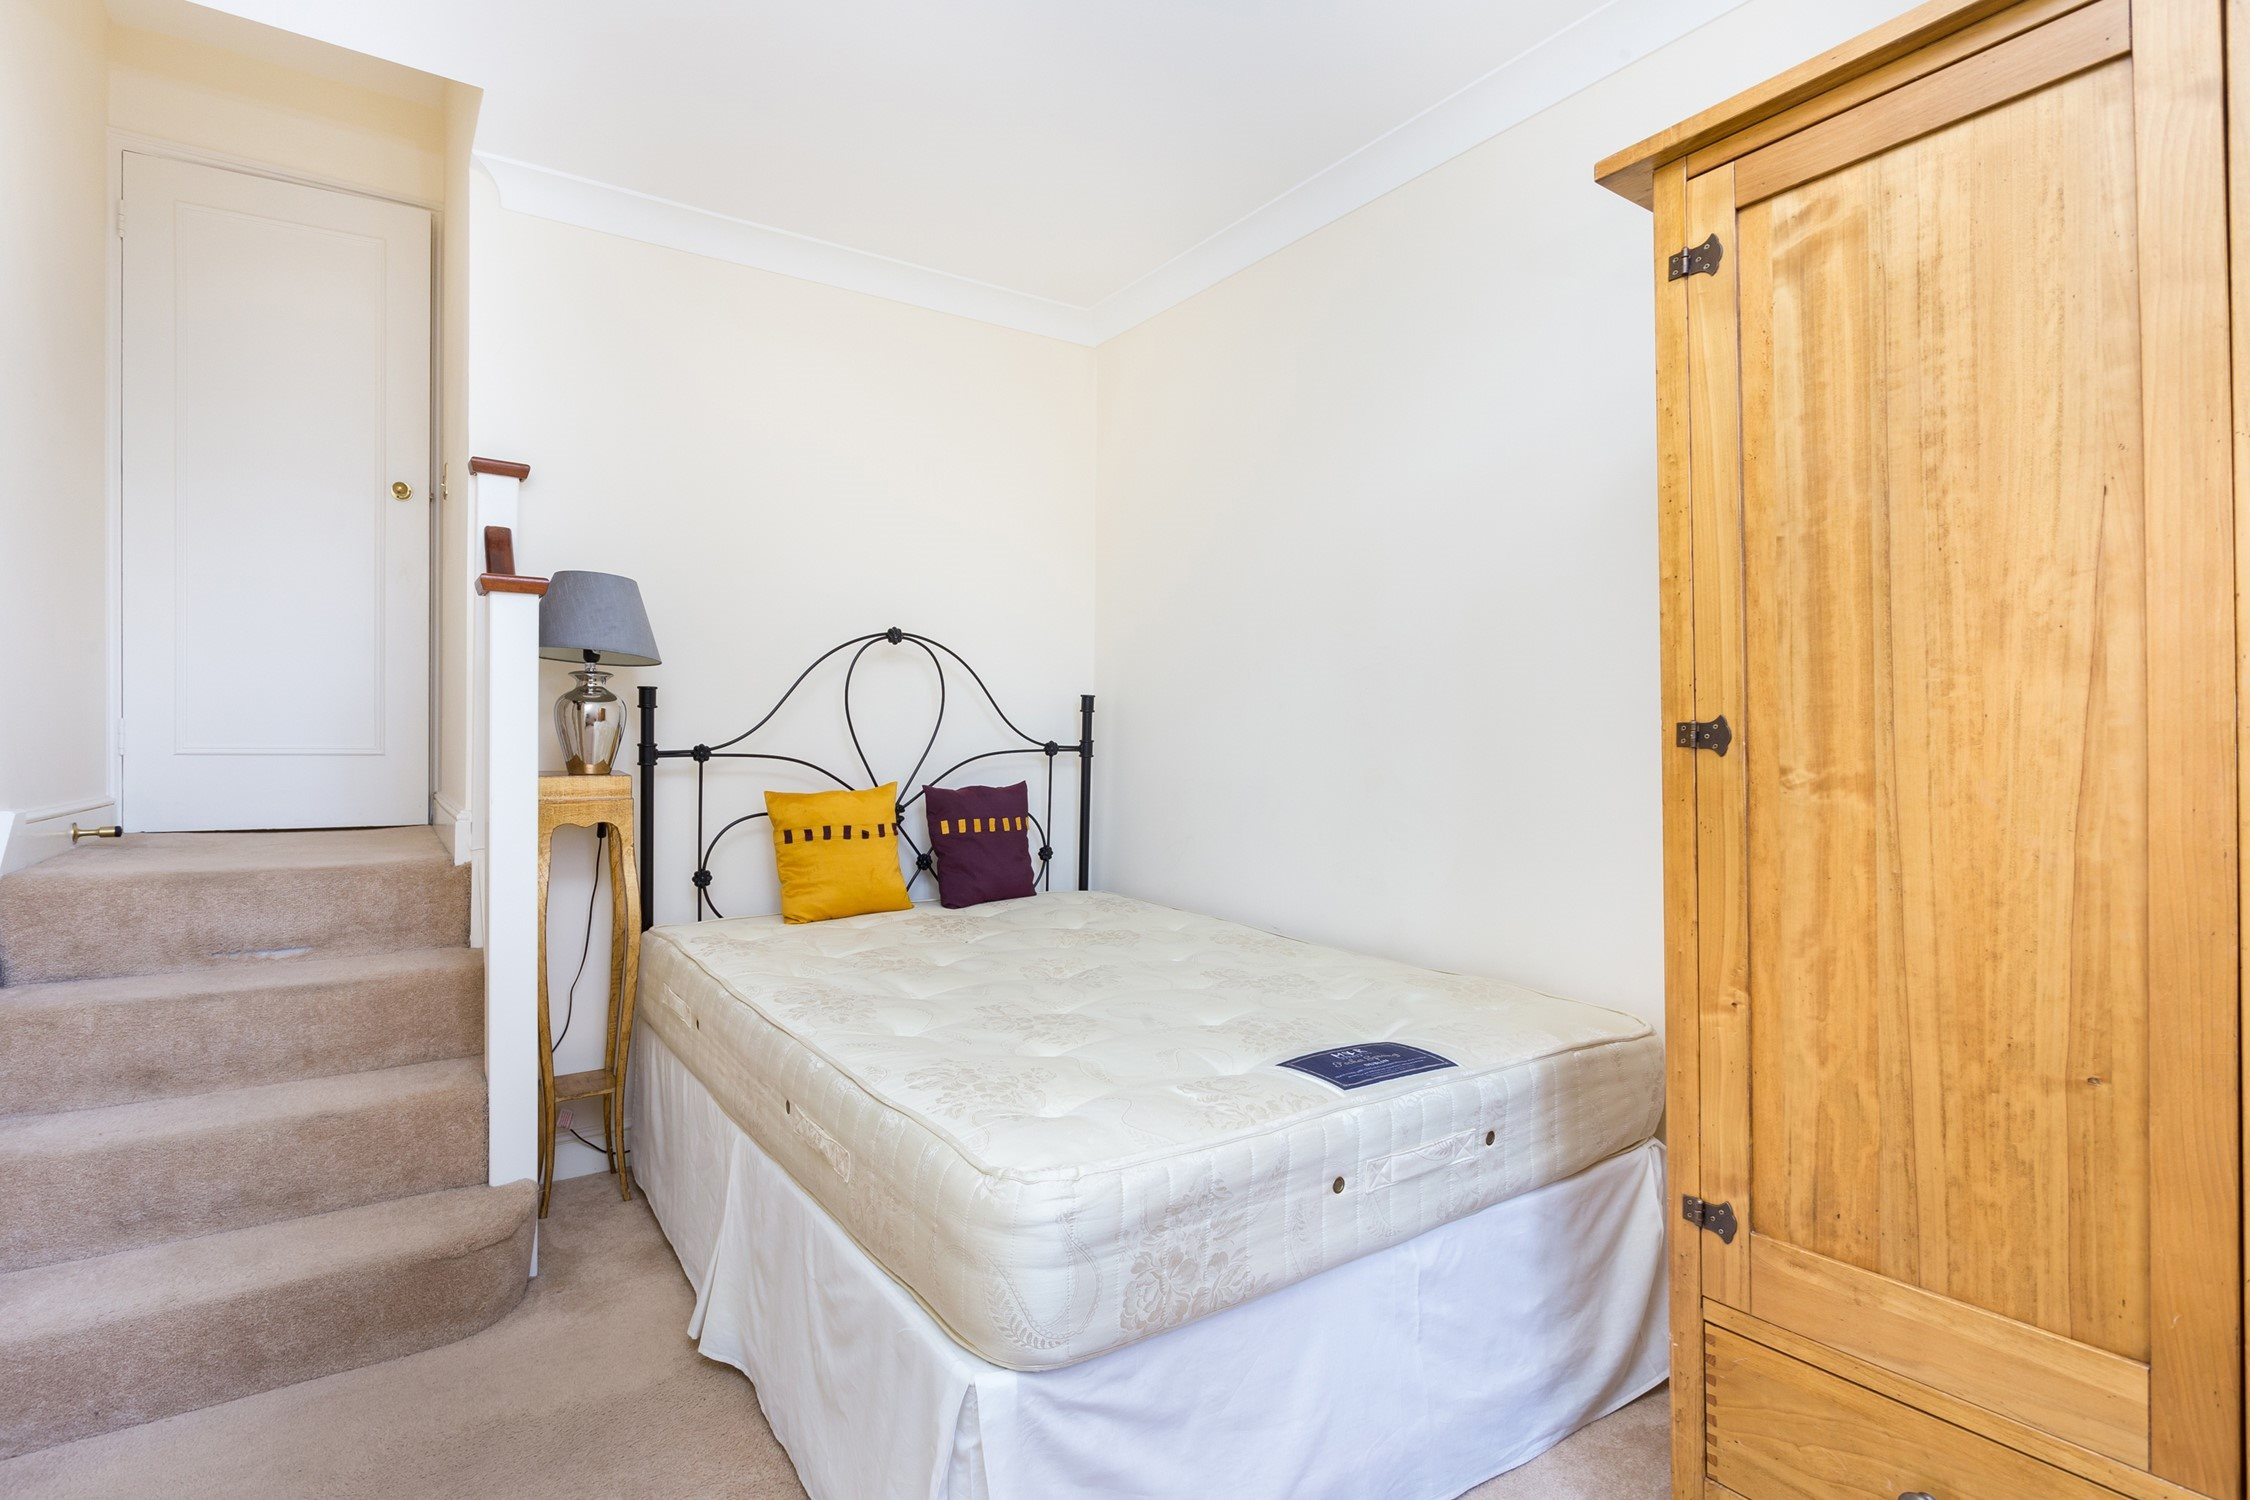 Portico 2 Bedroom Flat Recently Let In Earls Court Earls Court Square Sw5 460pw